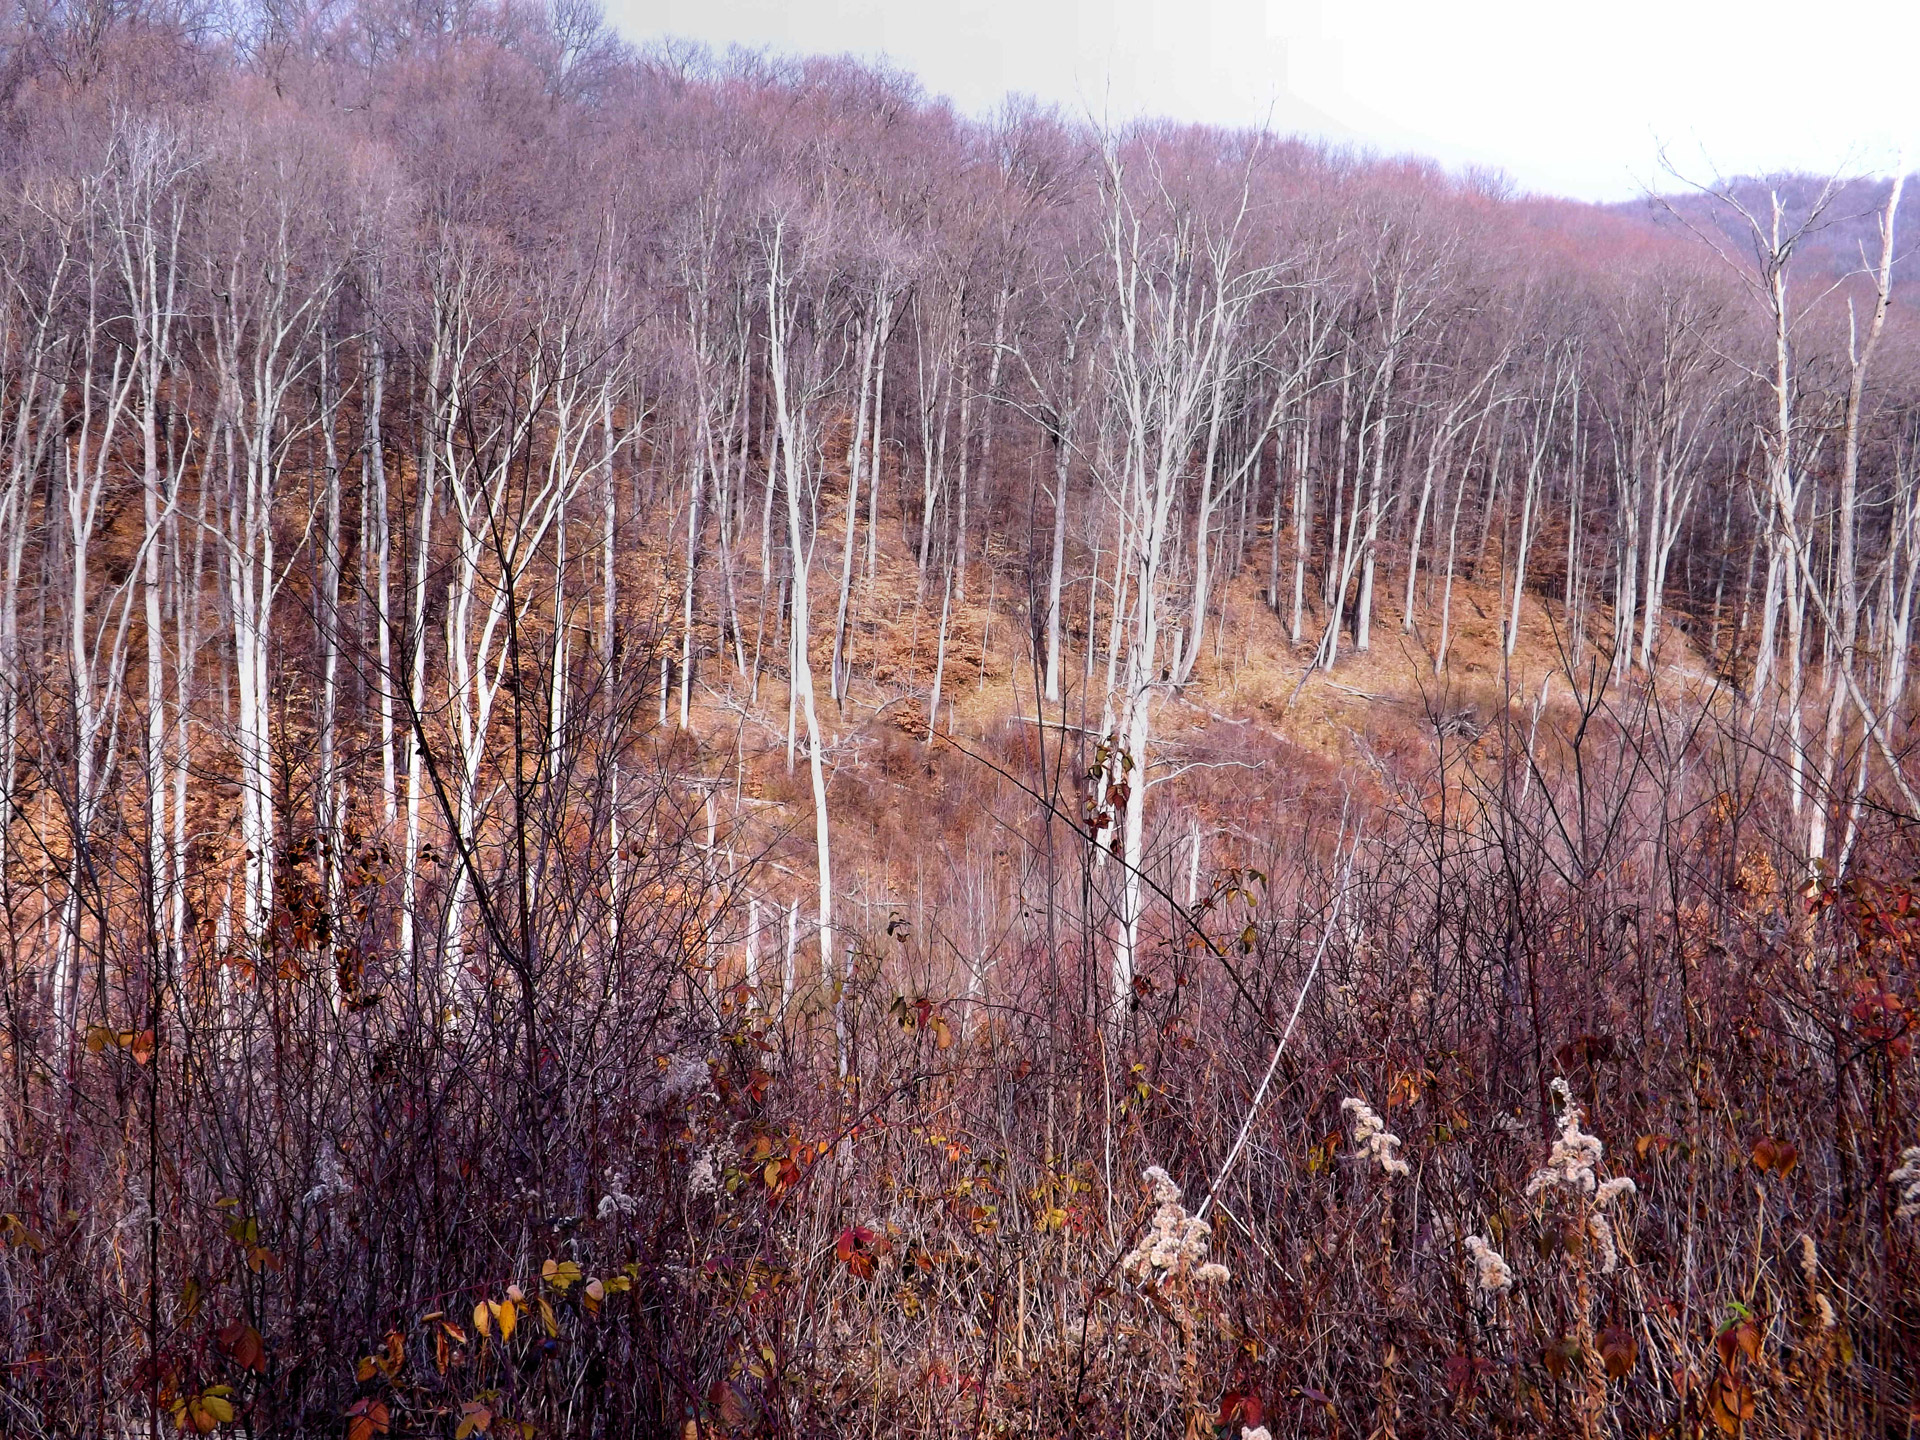 Indiana,morgan,monroe,state forest,hike - free photo from needpix com